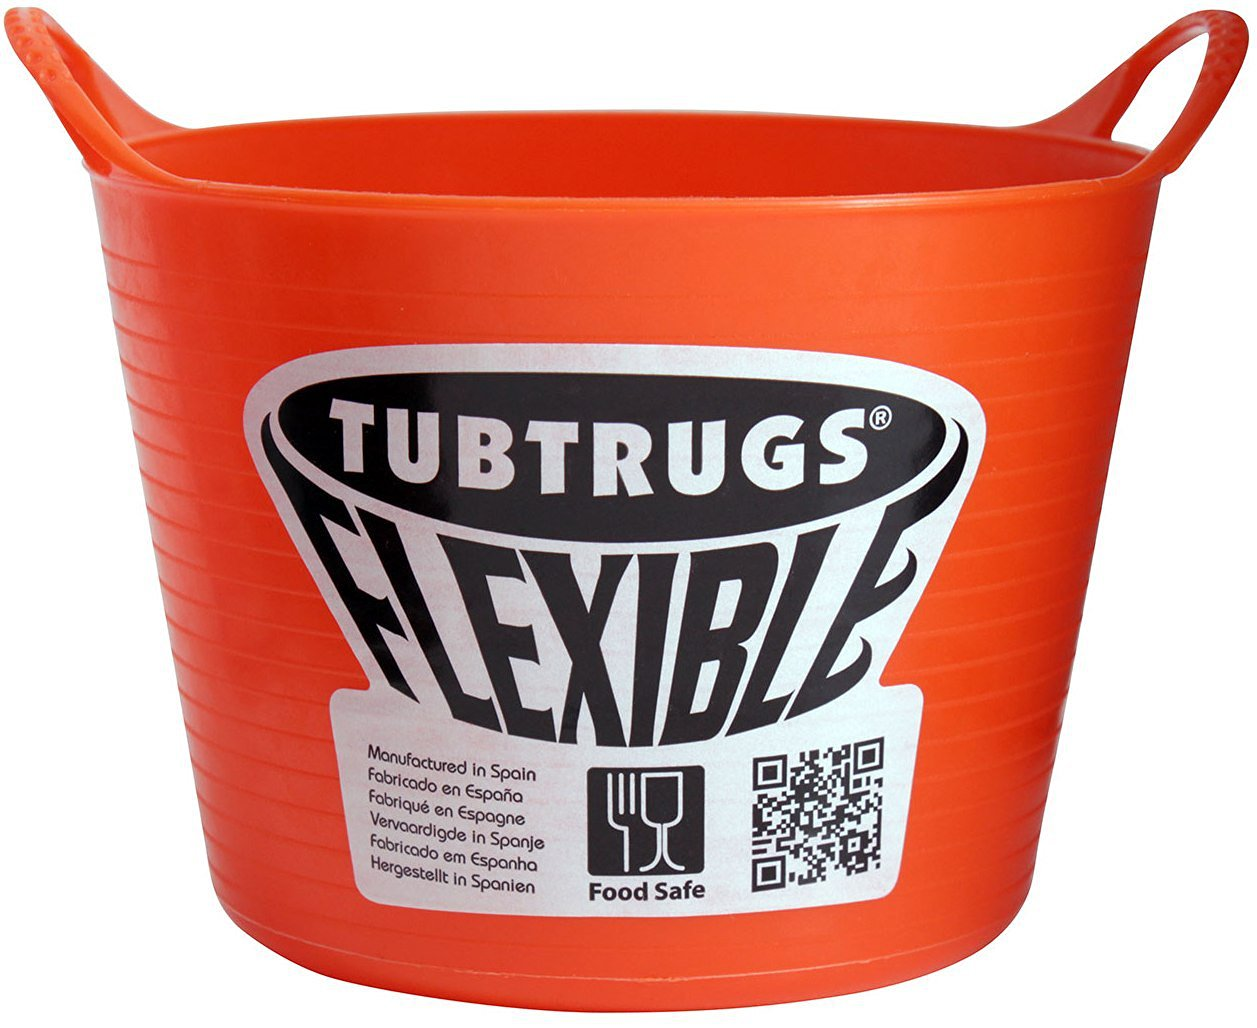 Tubtrugs SPMICO Flexible Orange Micro .37 Liter/12.5 Ounce Capacity